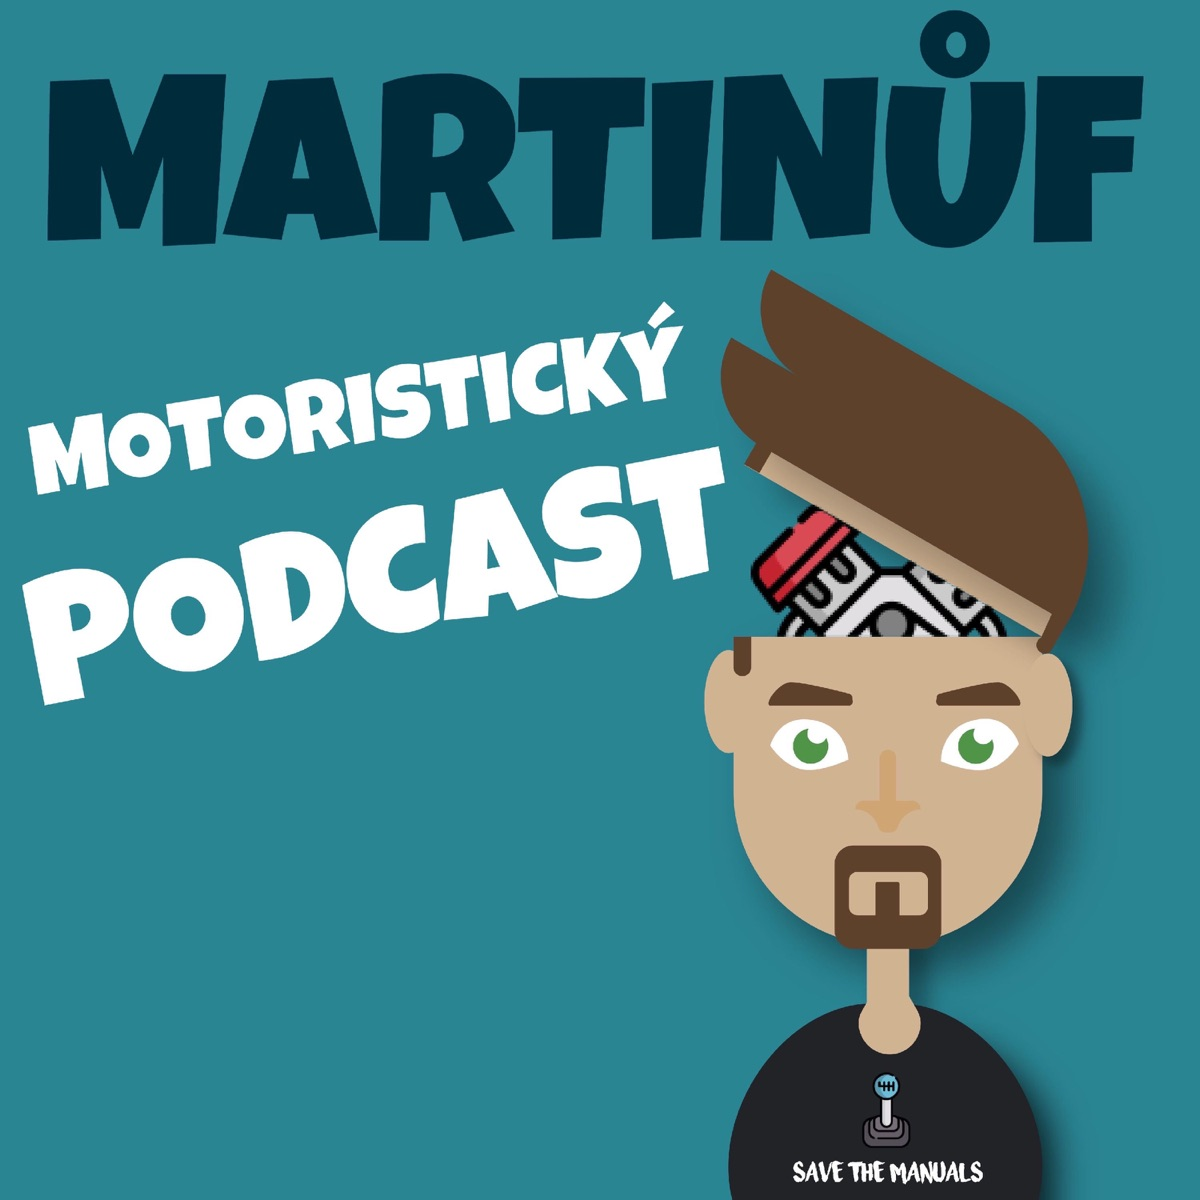 MARTINŮF MOTORISTICKÝ PODCAST